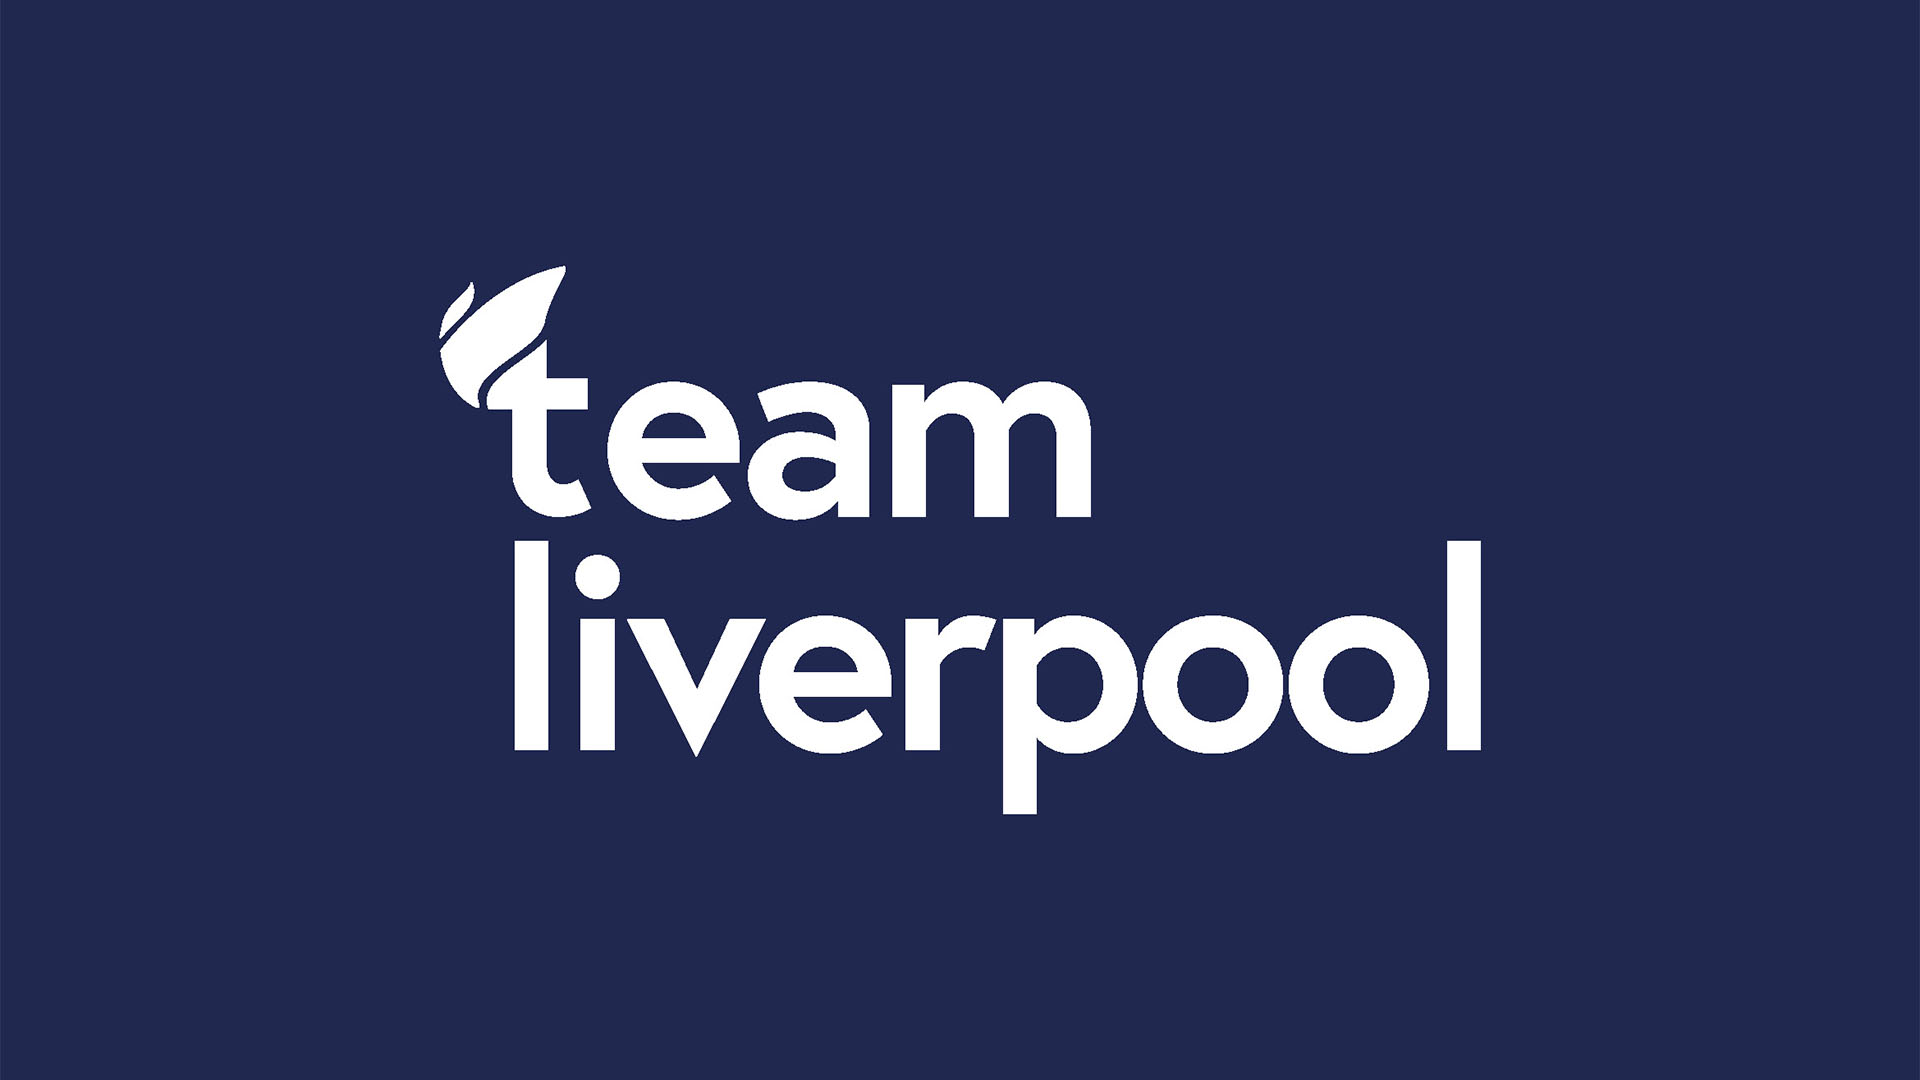 'Team Liverpool' launched